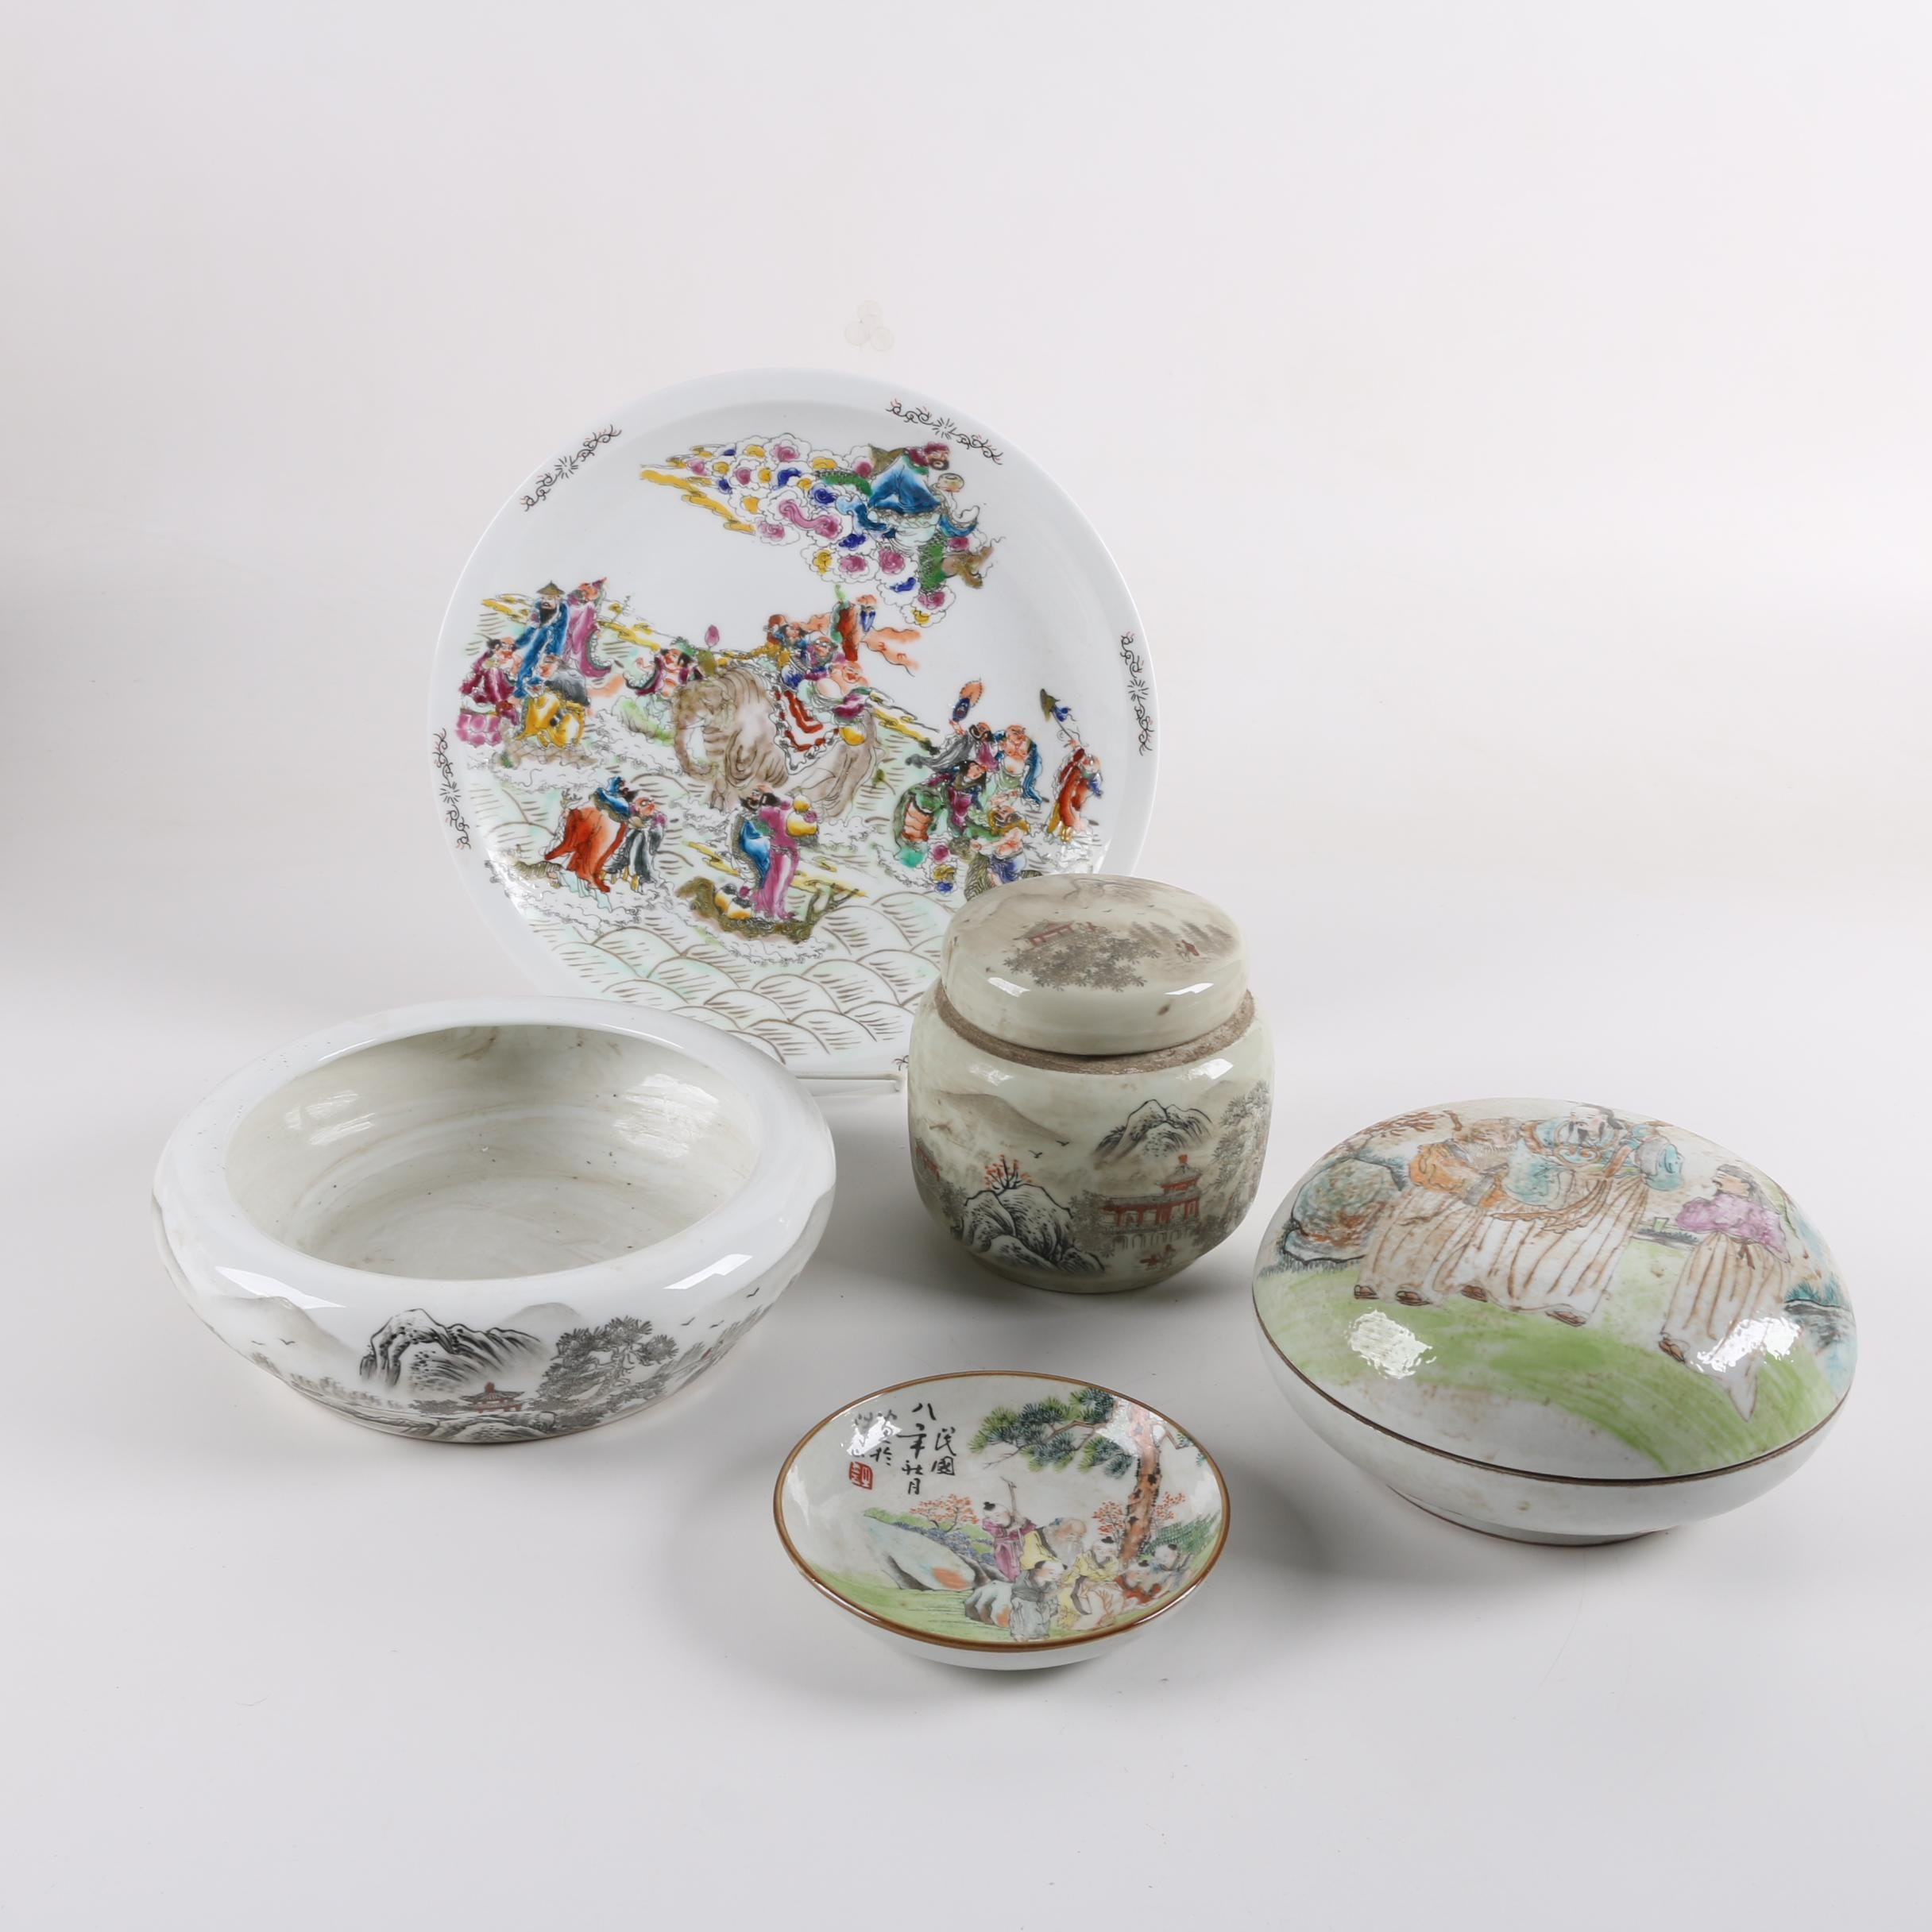 Chinese Decorative Plates and Covered Bowls